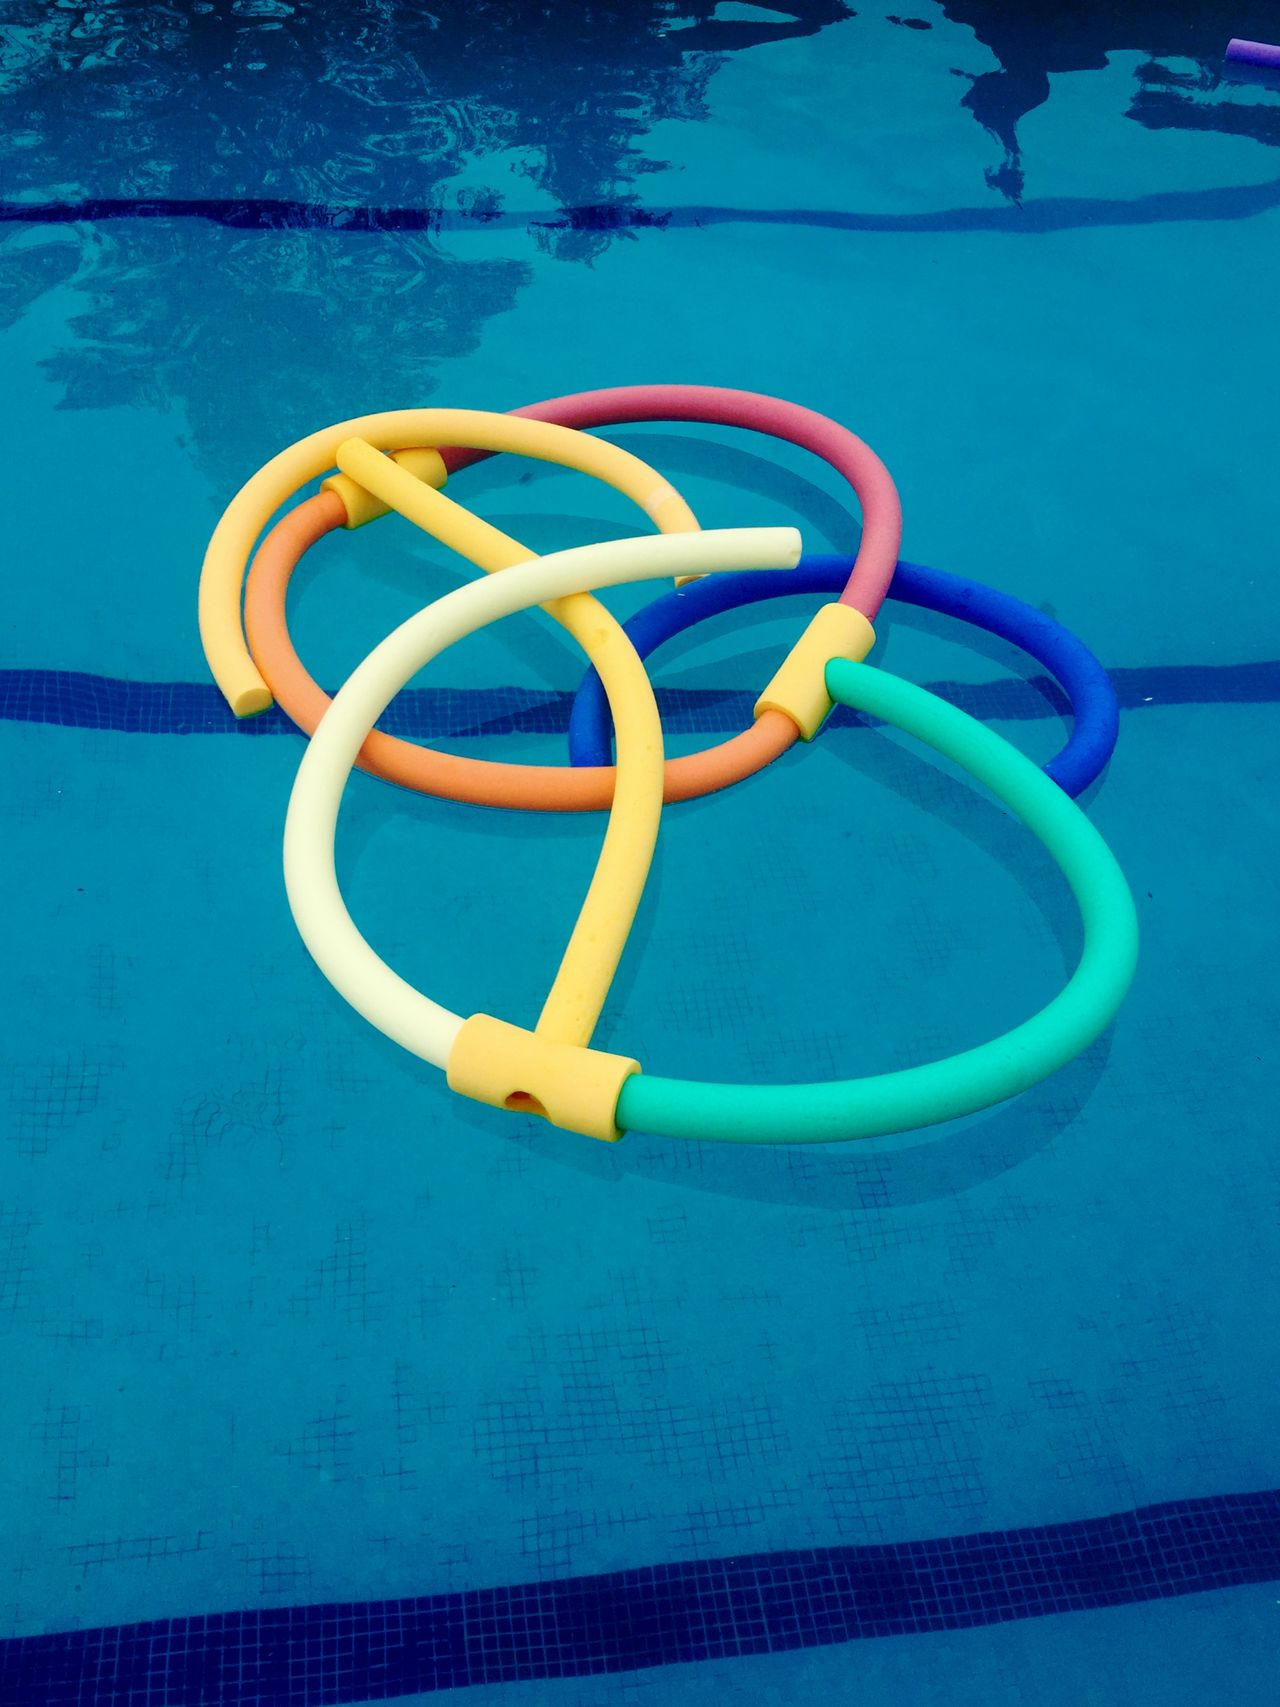 Art Blue Children Circle Close-up Colors Contrast Day Learning No People Outdoors Pool Noodle Summer Swimming Swimming Pool Toy Travel Vacation Water Yellow